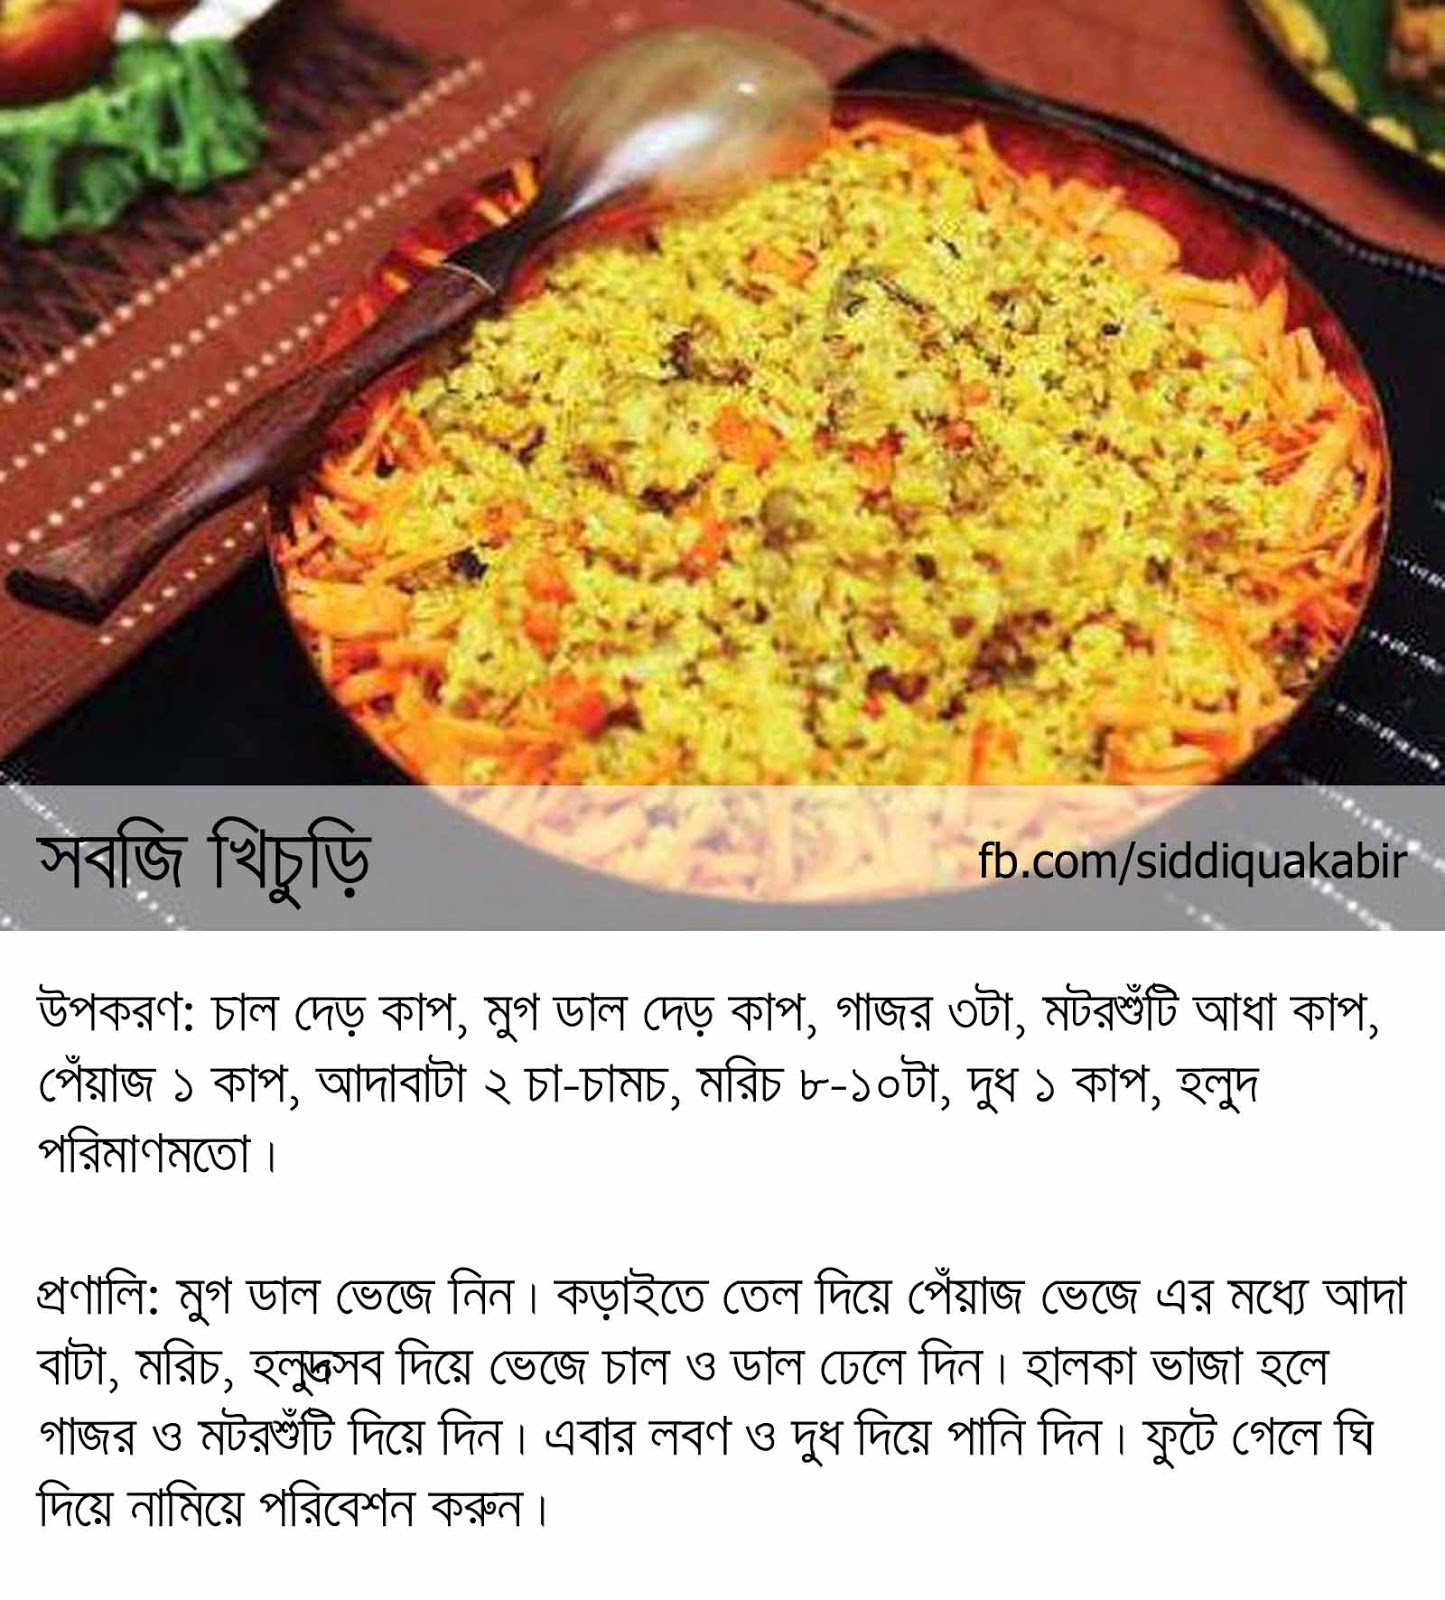 Bangali foods some khichuri recipes in bangla sobji khichuri vegetable khichuri forumfinder Gallery